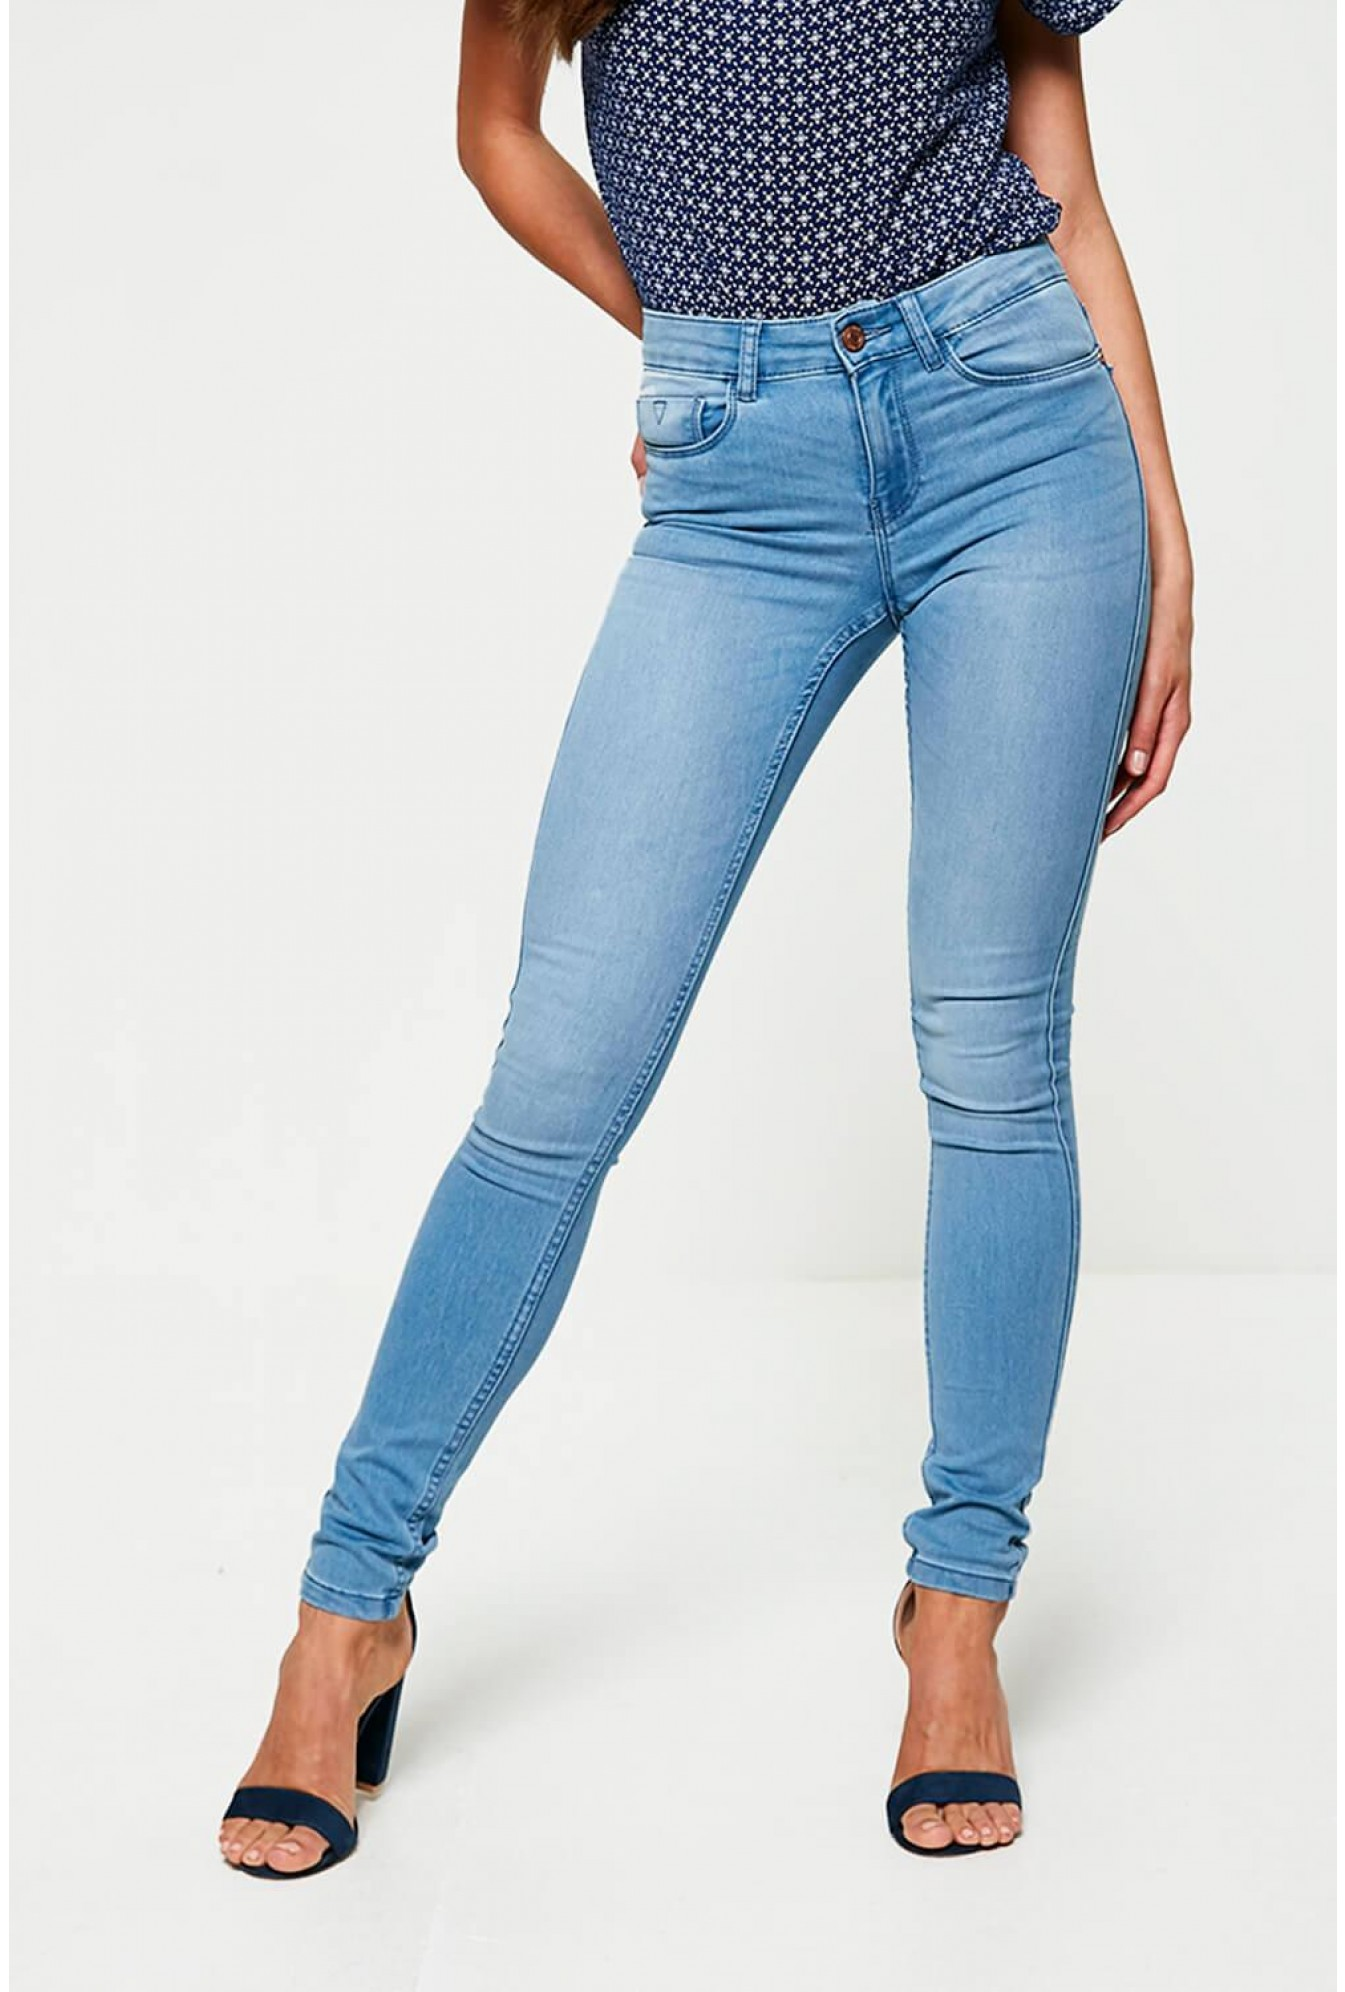 c834ad82190eab Noisy May Extreme High Waist Jeans in Light Blue Denim | iCLOTHING